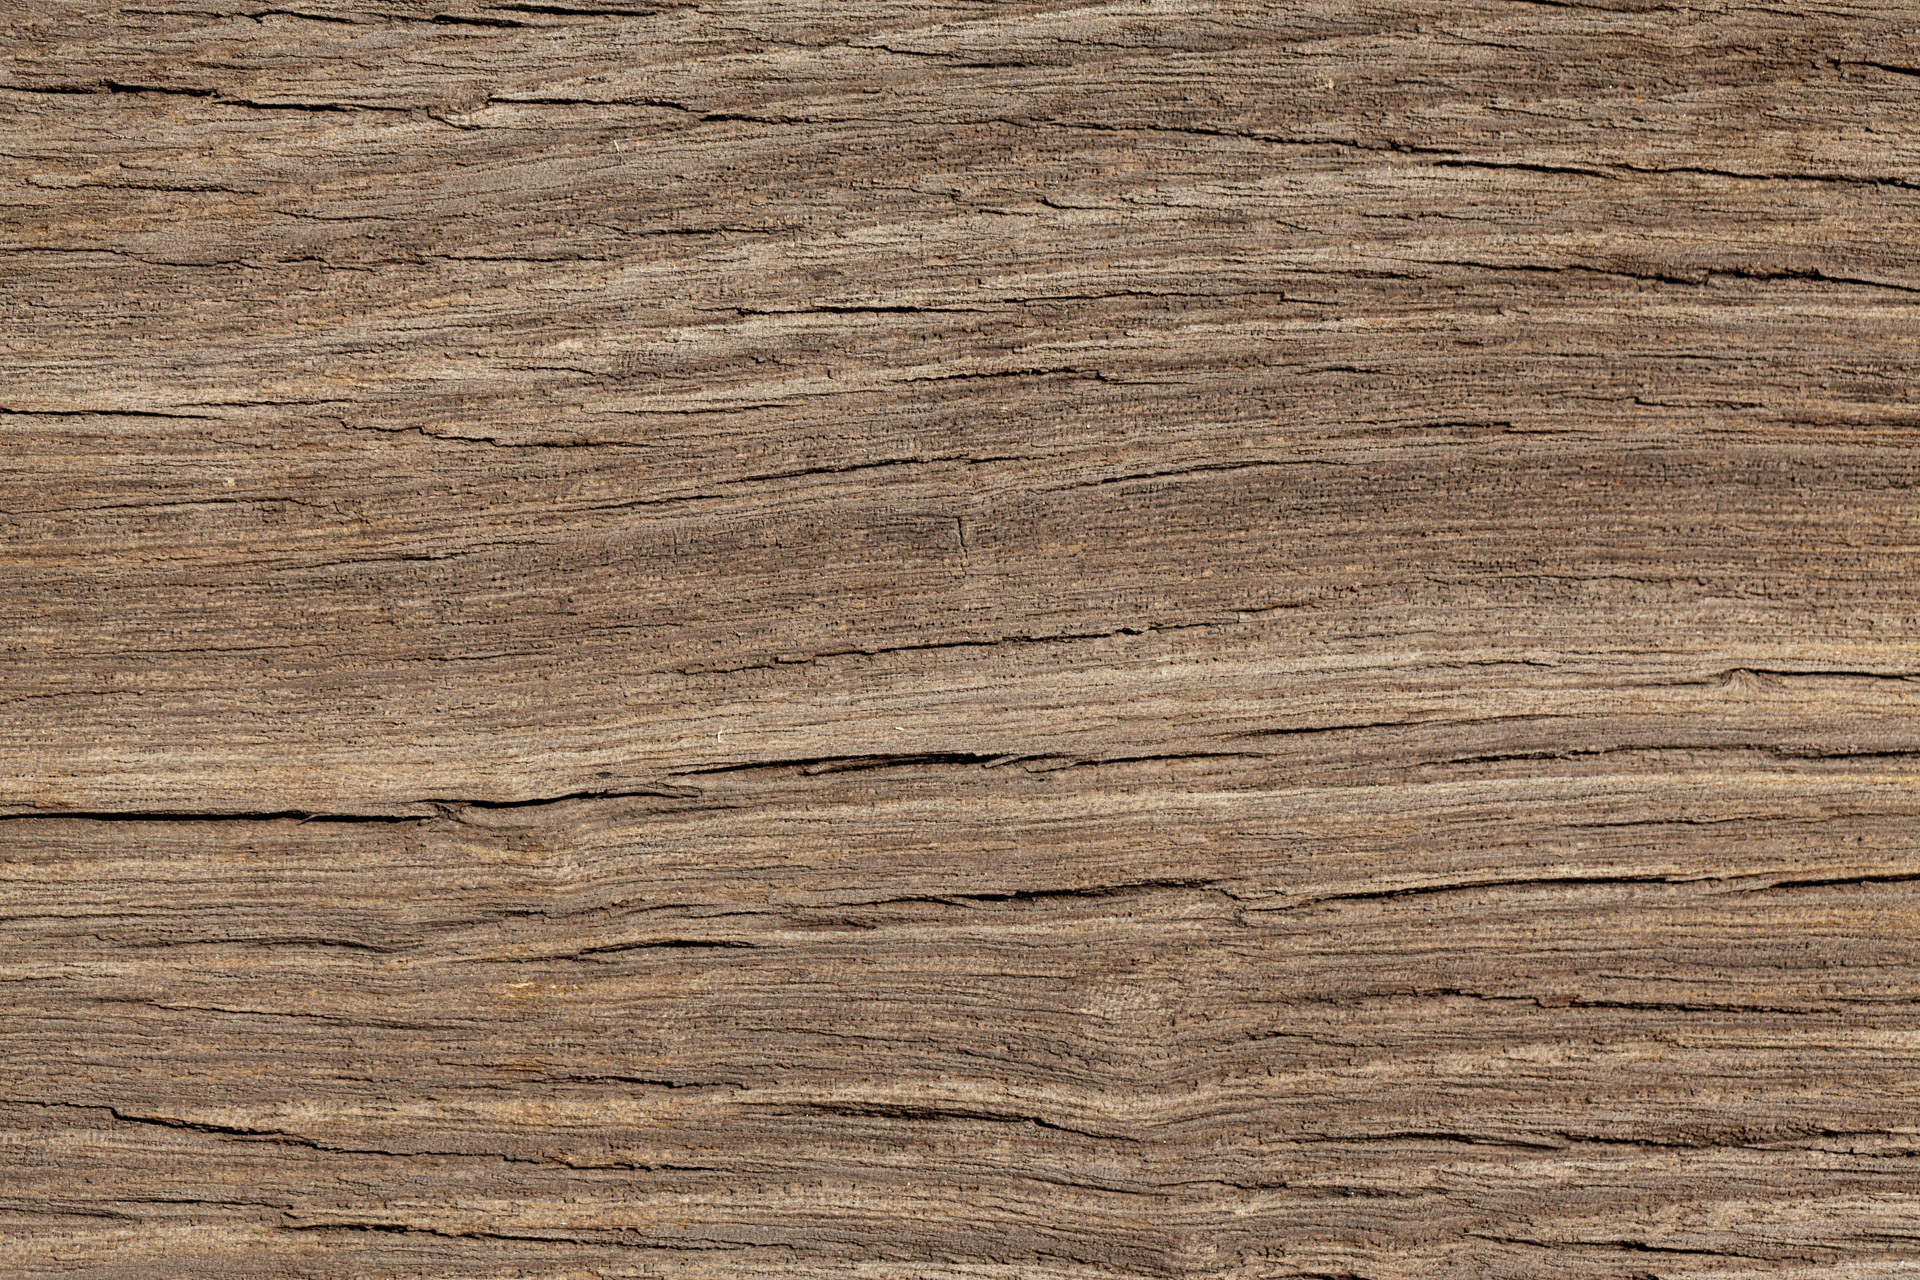 free photo wooden texture wooden wood texture free download